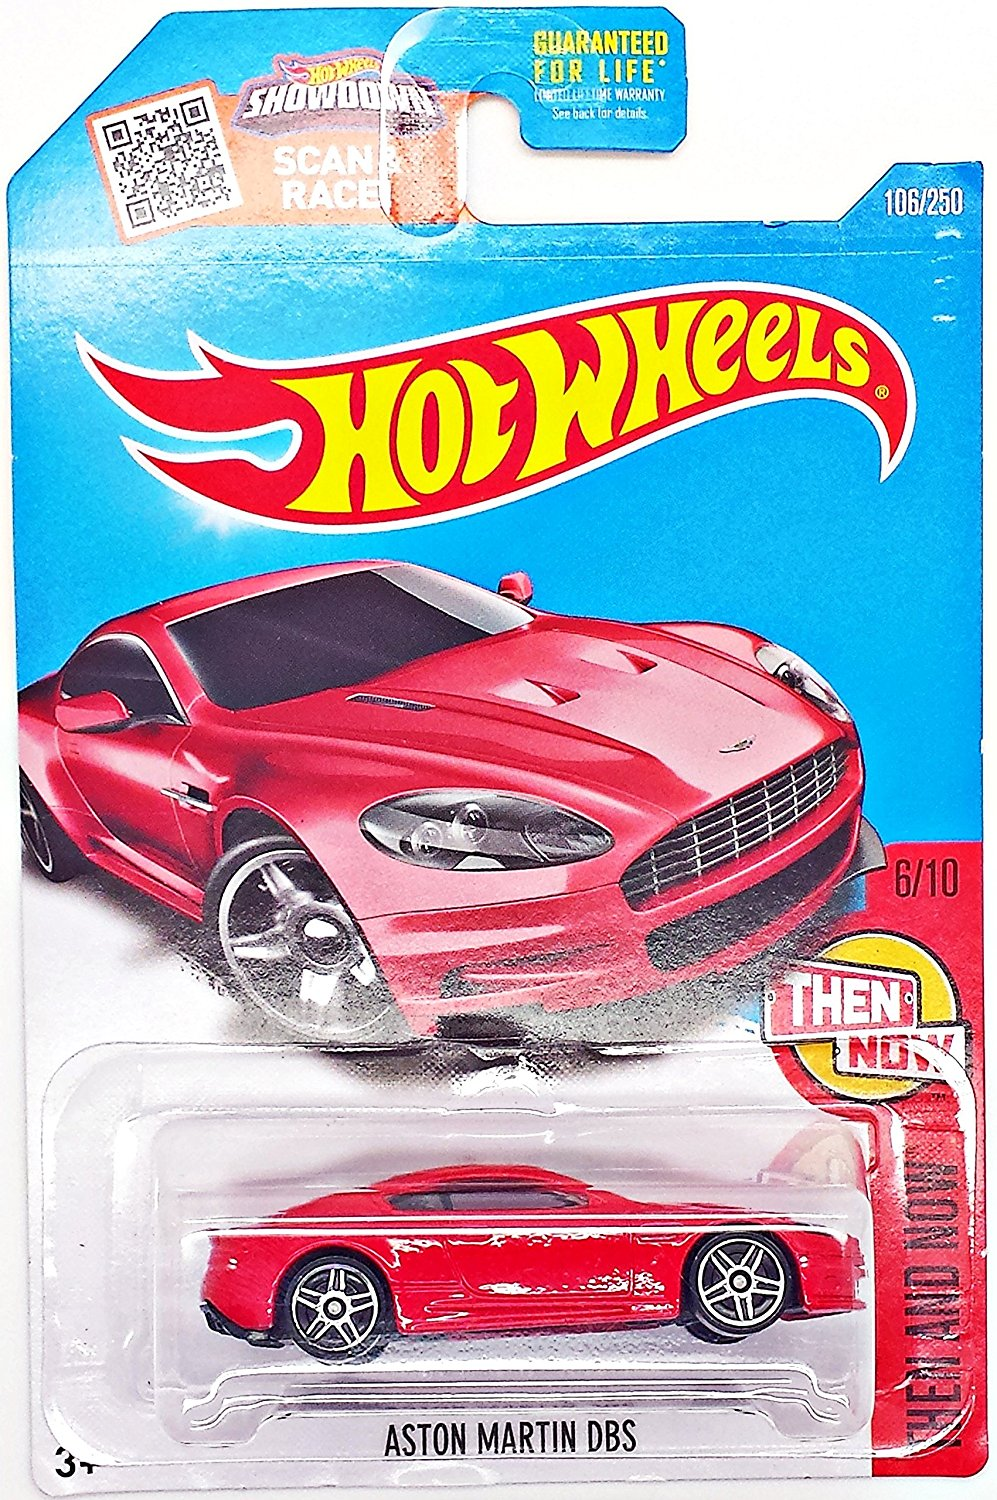 ASTON MARTIN DBS Hot Wheels 2016 Then and Now Series Red Aston 1:64 Scale Collectible Die Cast Metal Toy Car Model #6/10 on International Long Card